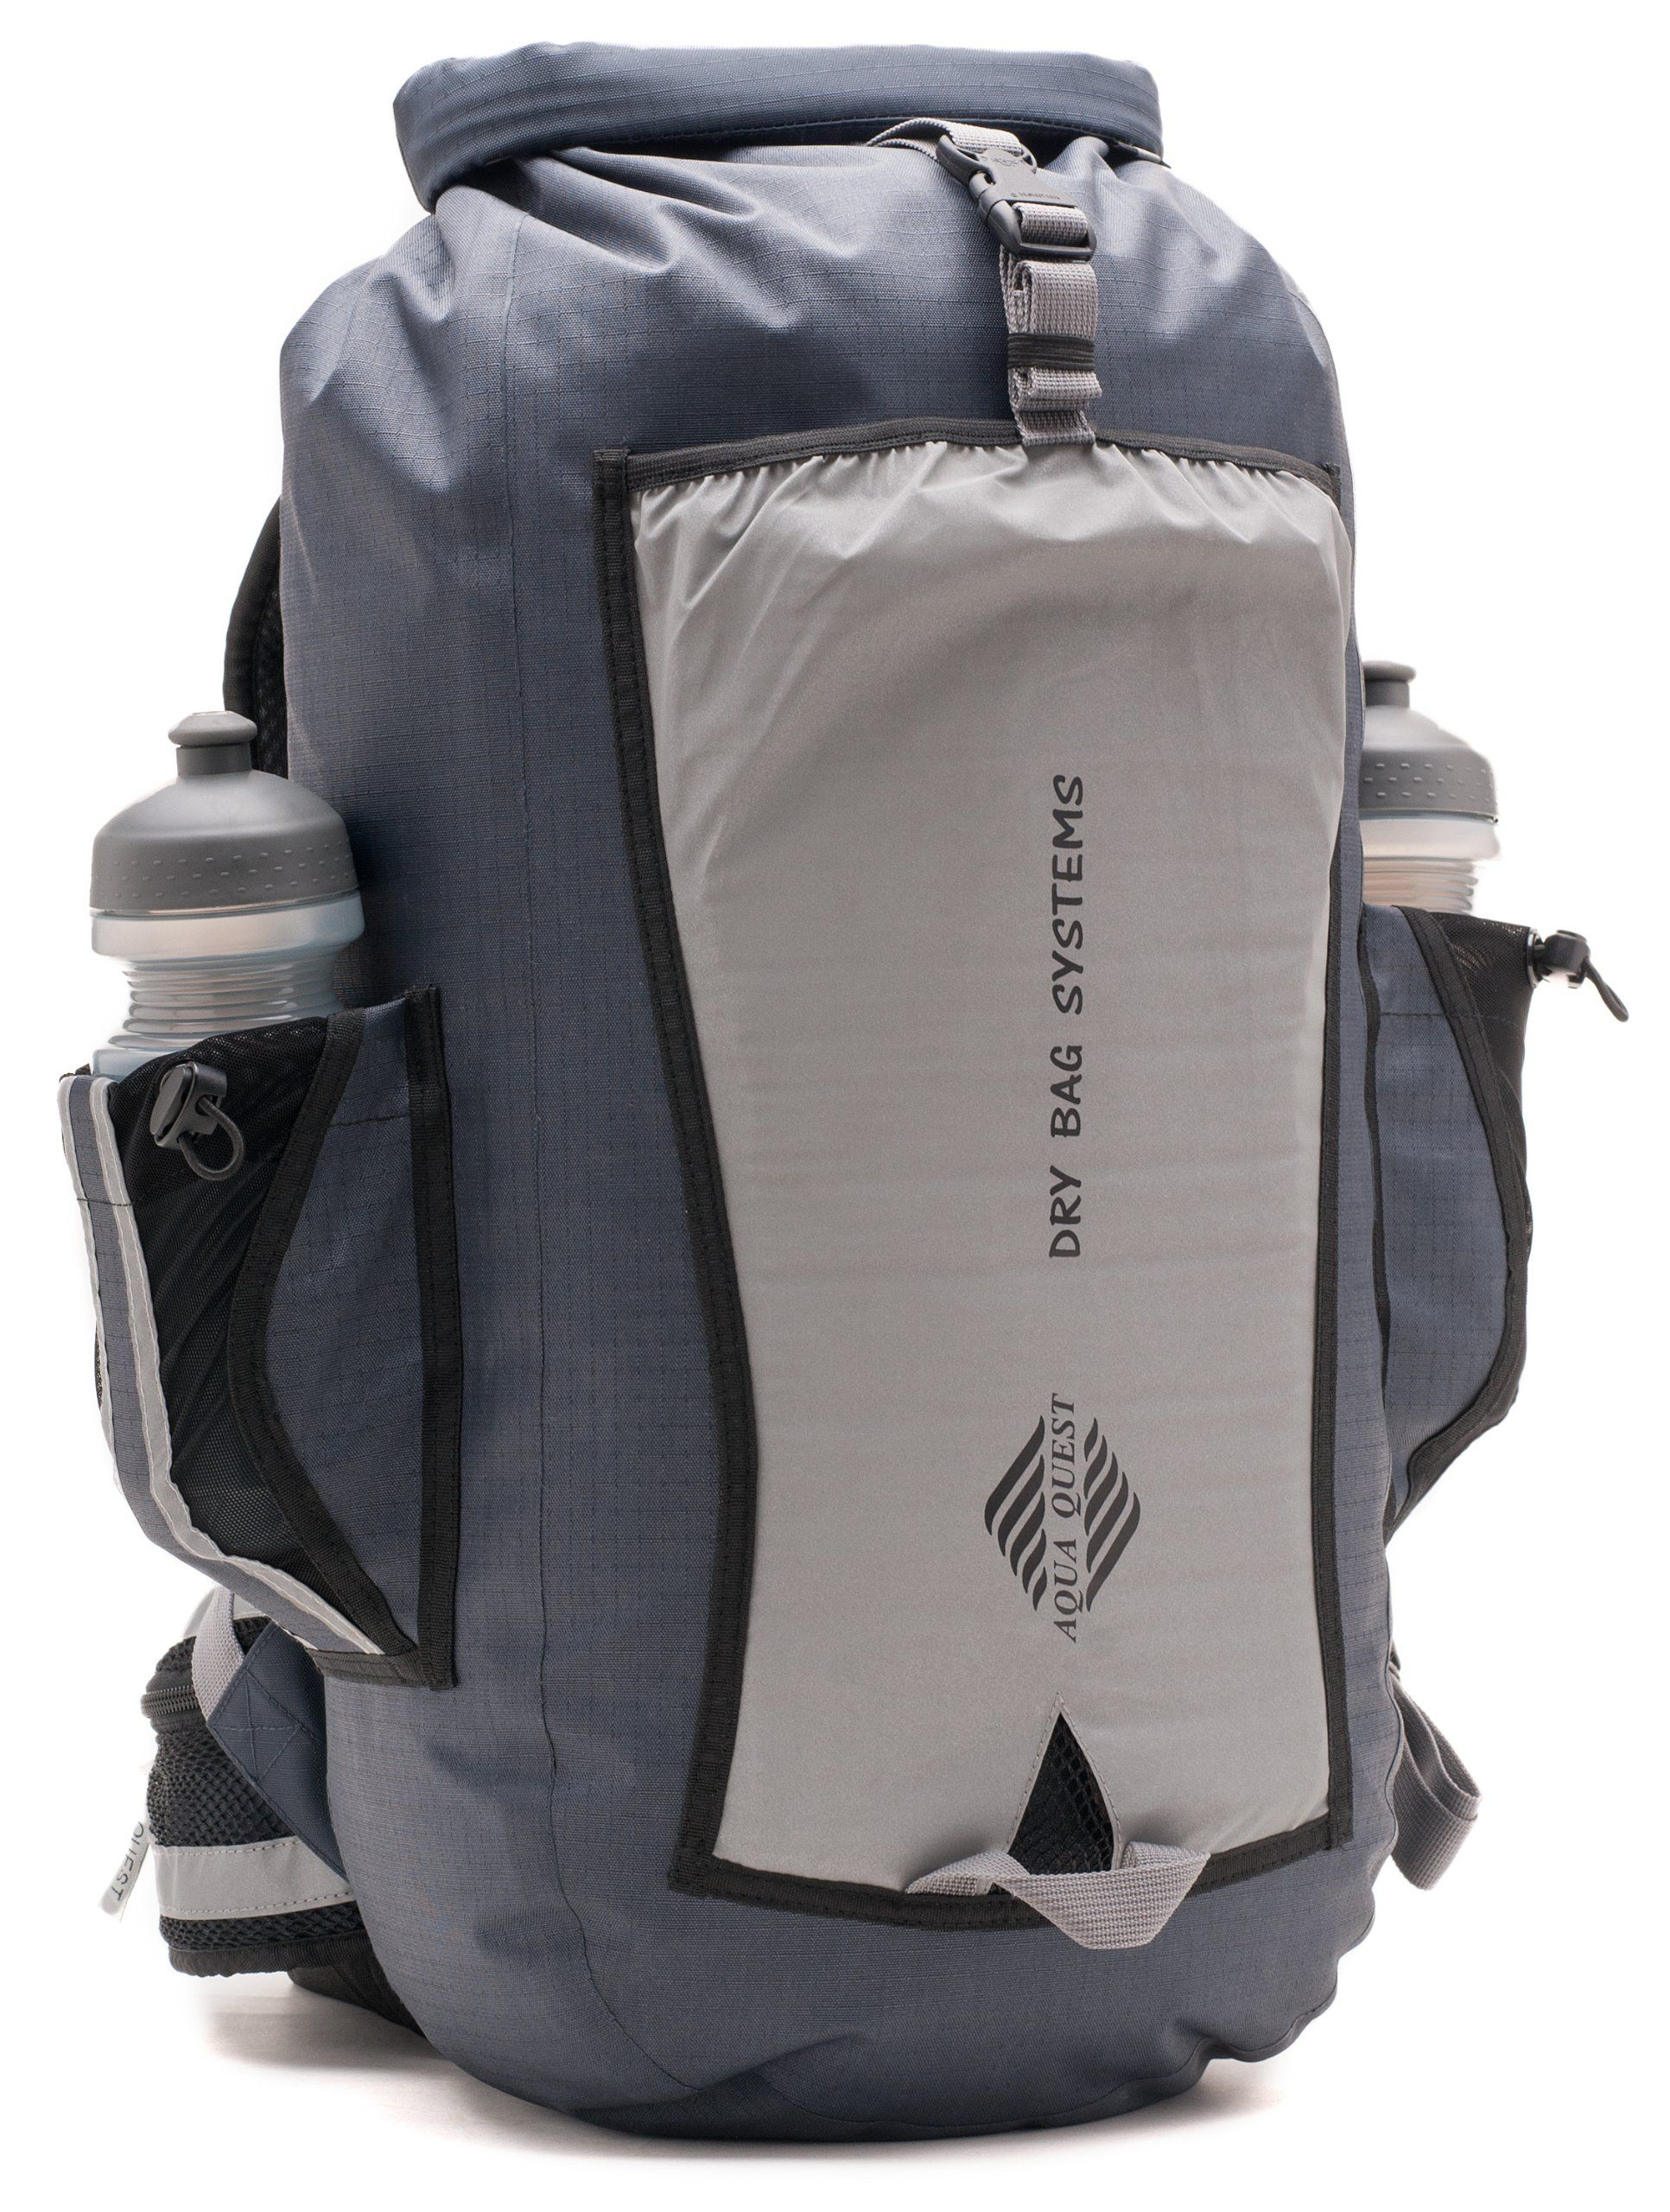 K3 22 Liter Sport Waterproof Backpack Review National Geographic 5738 Large Khaki